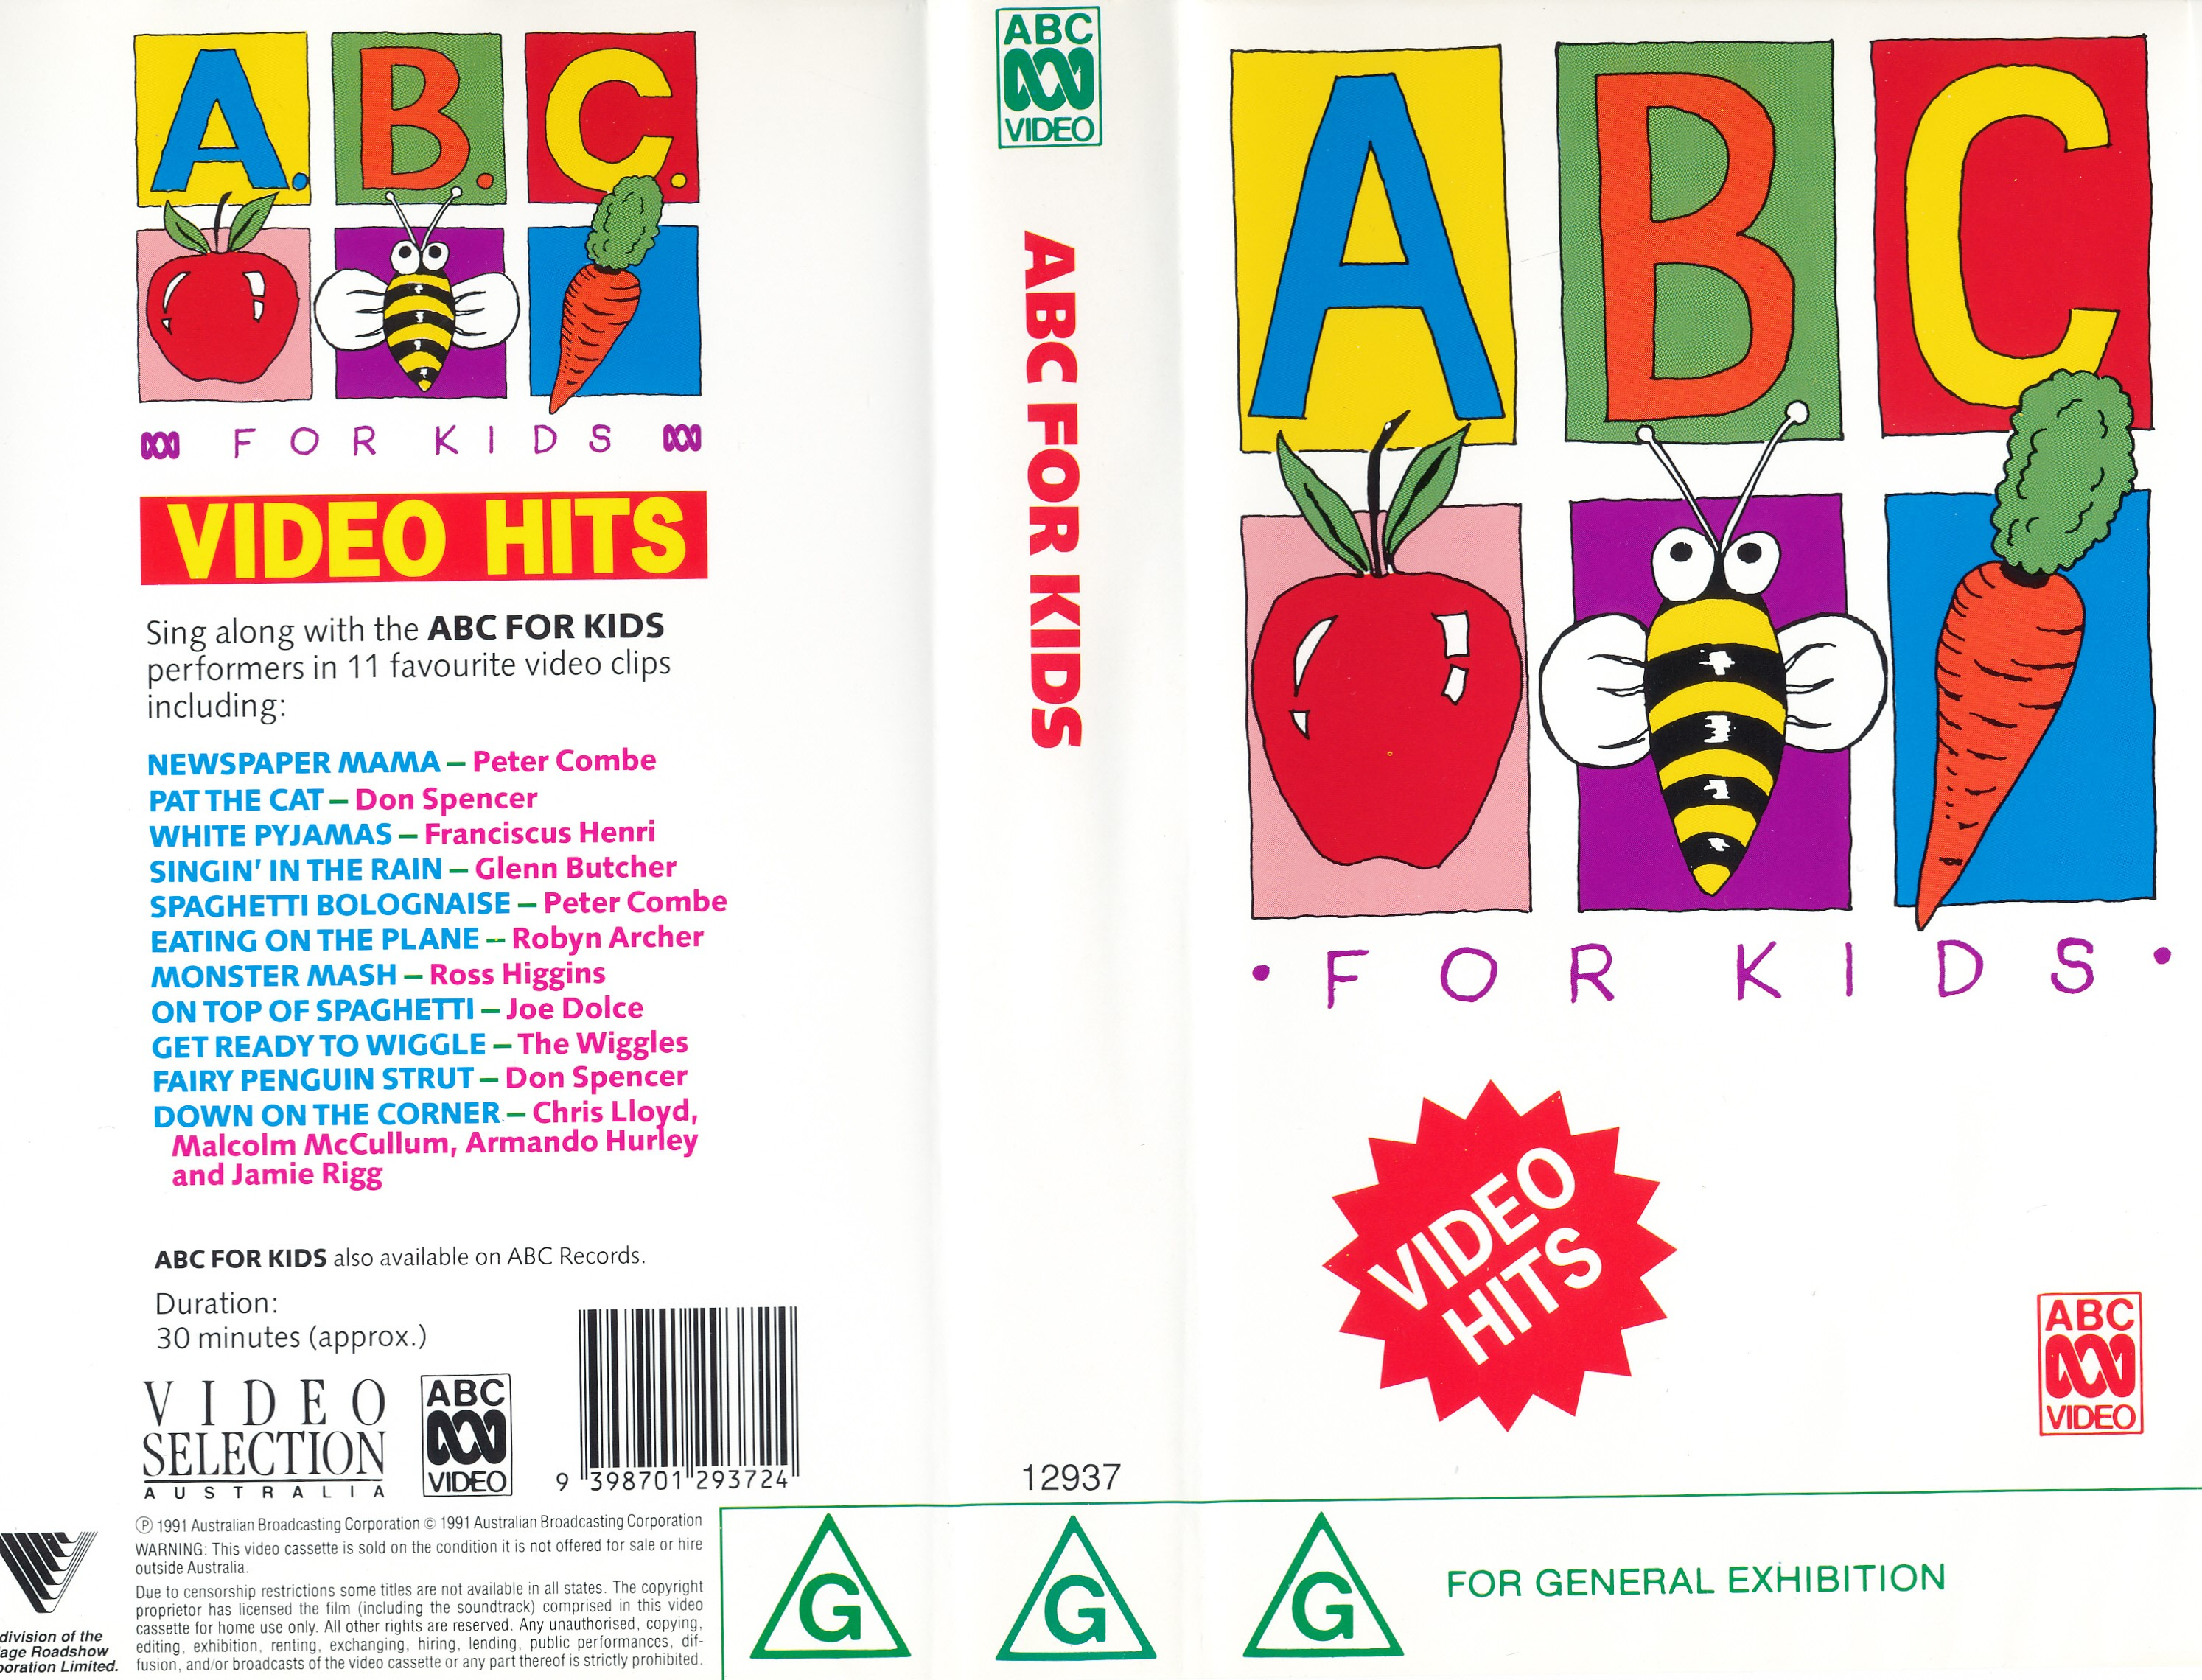 ABC For Kids Video Hits